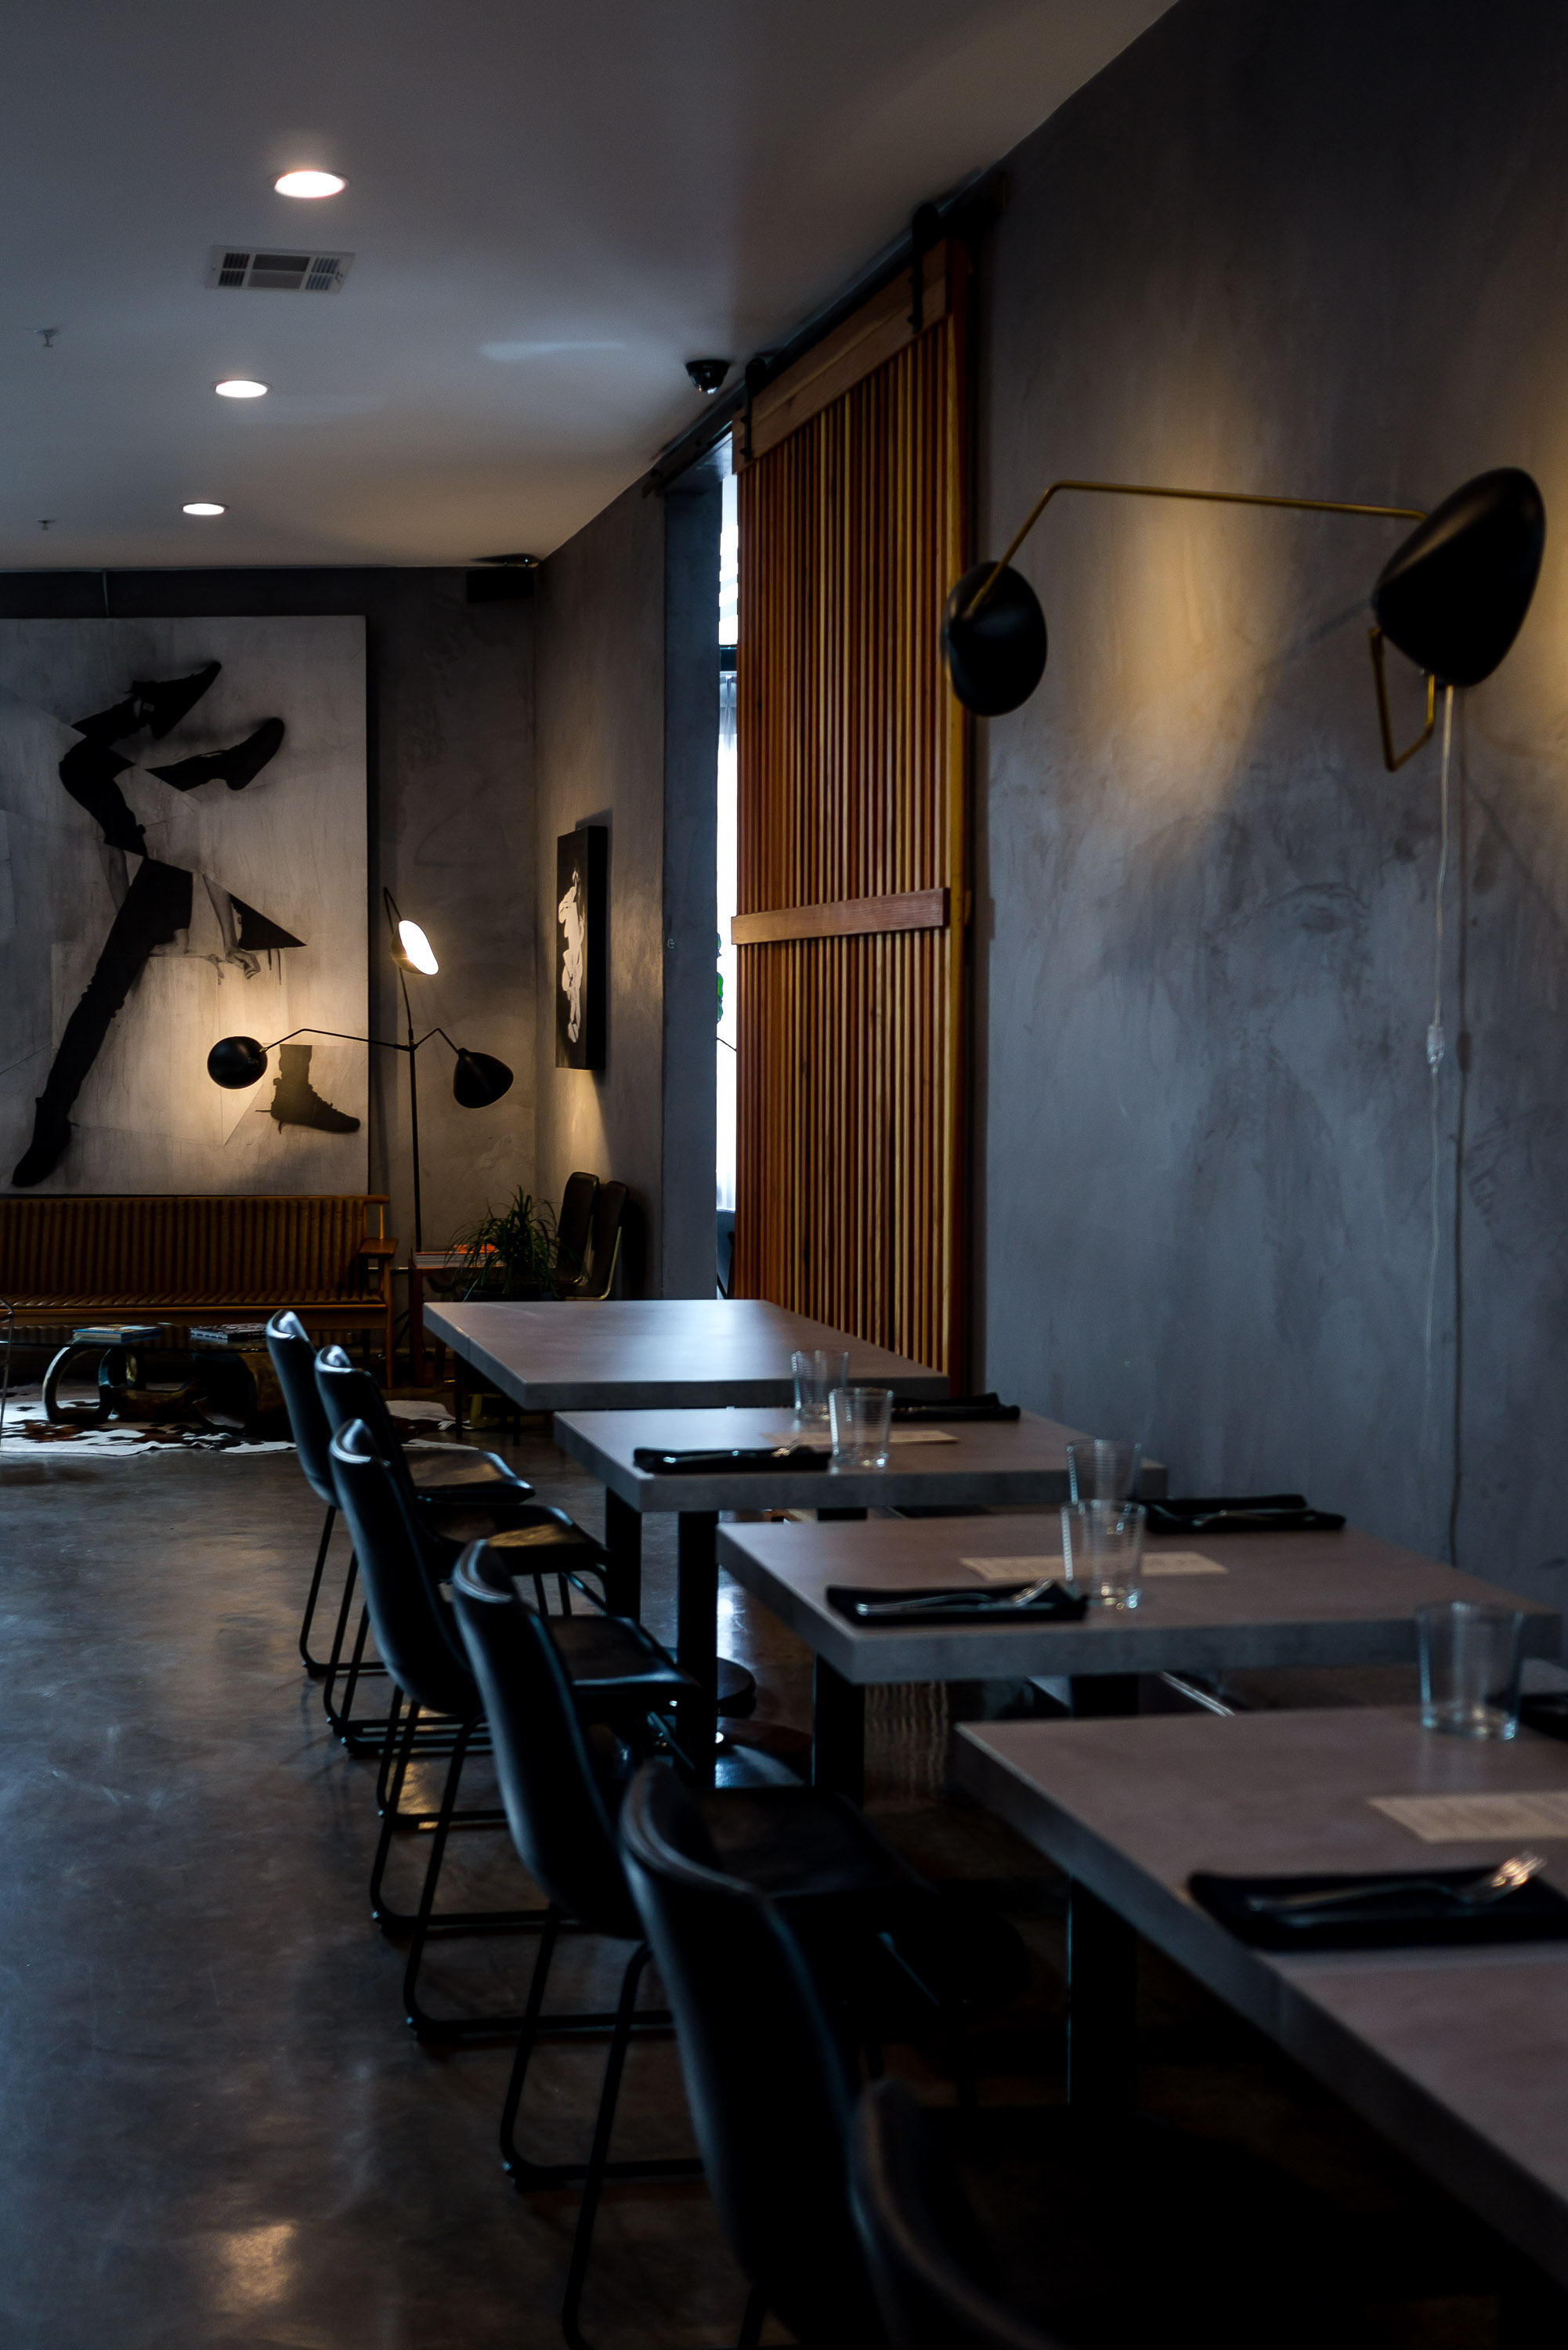 MYBELONGING-TUCK-HOTEL-DOWNTOWN-LOS-ANGELES-STAYCATION-LIFESTYLE-PHOTOGRAPHY-24.jpg